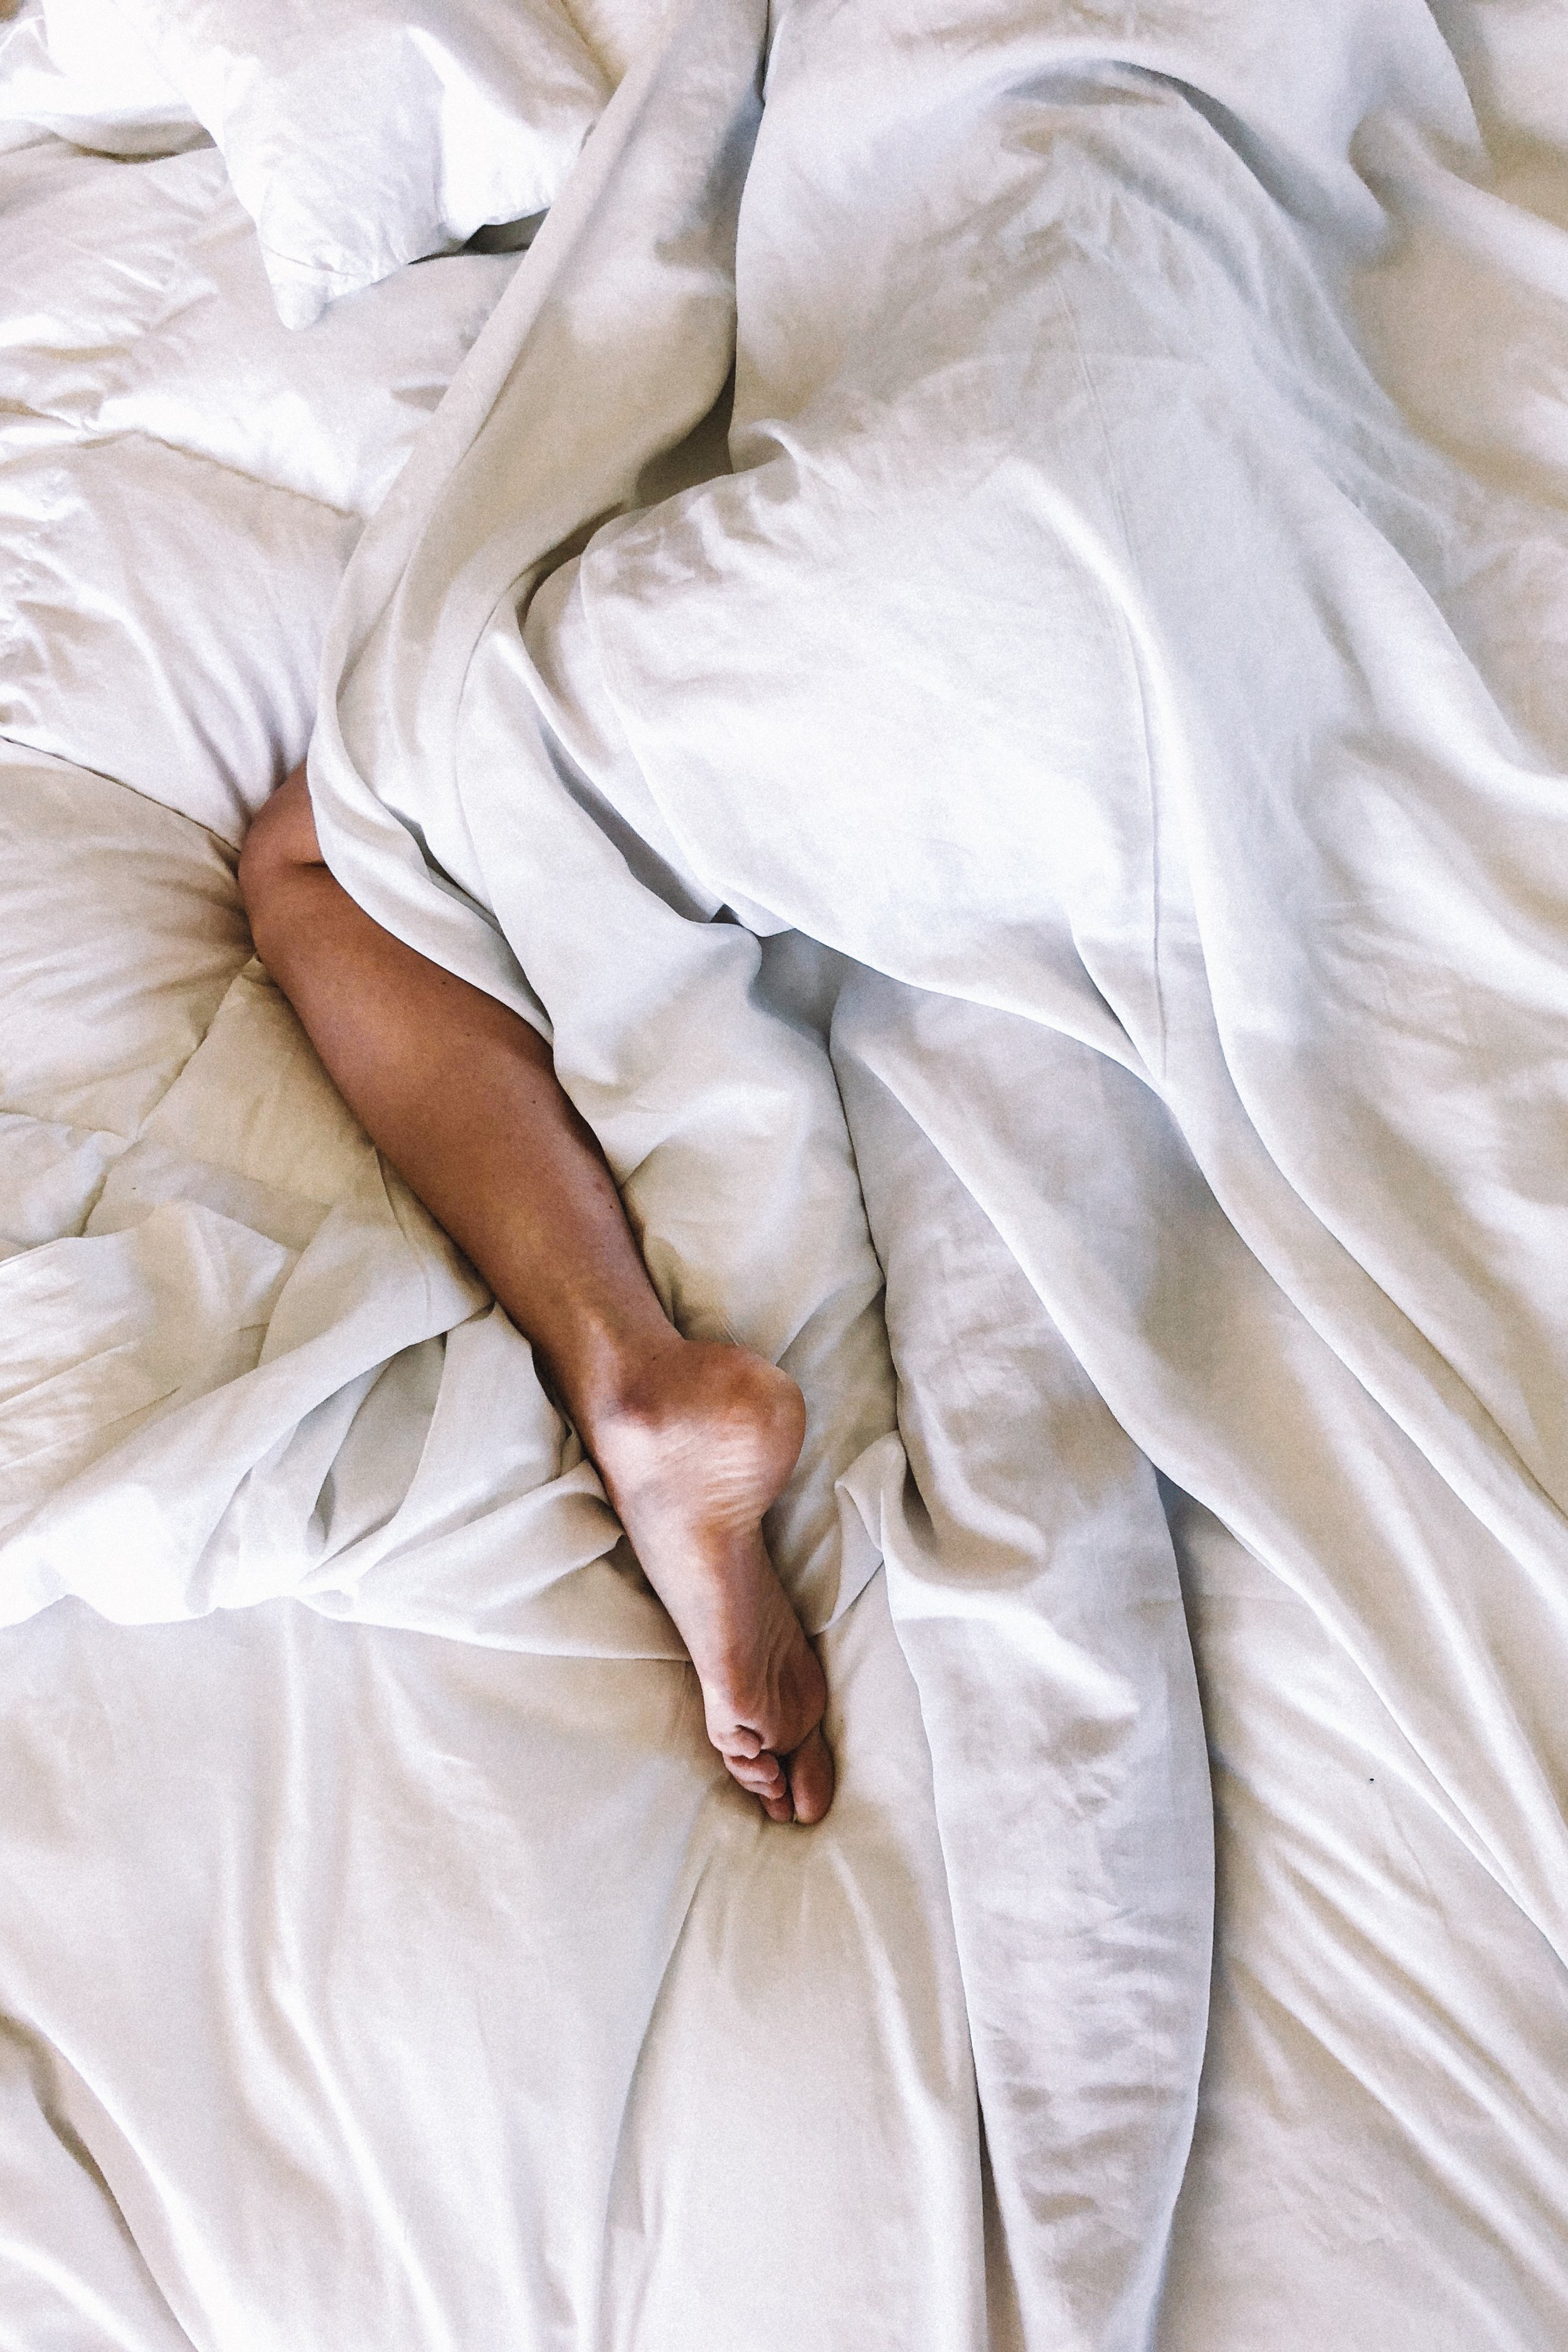 Person laying in bed, white sheets and quilt with one leg out from under the covers.